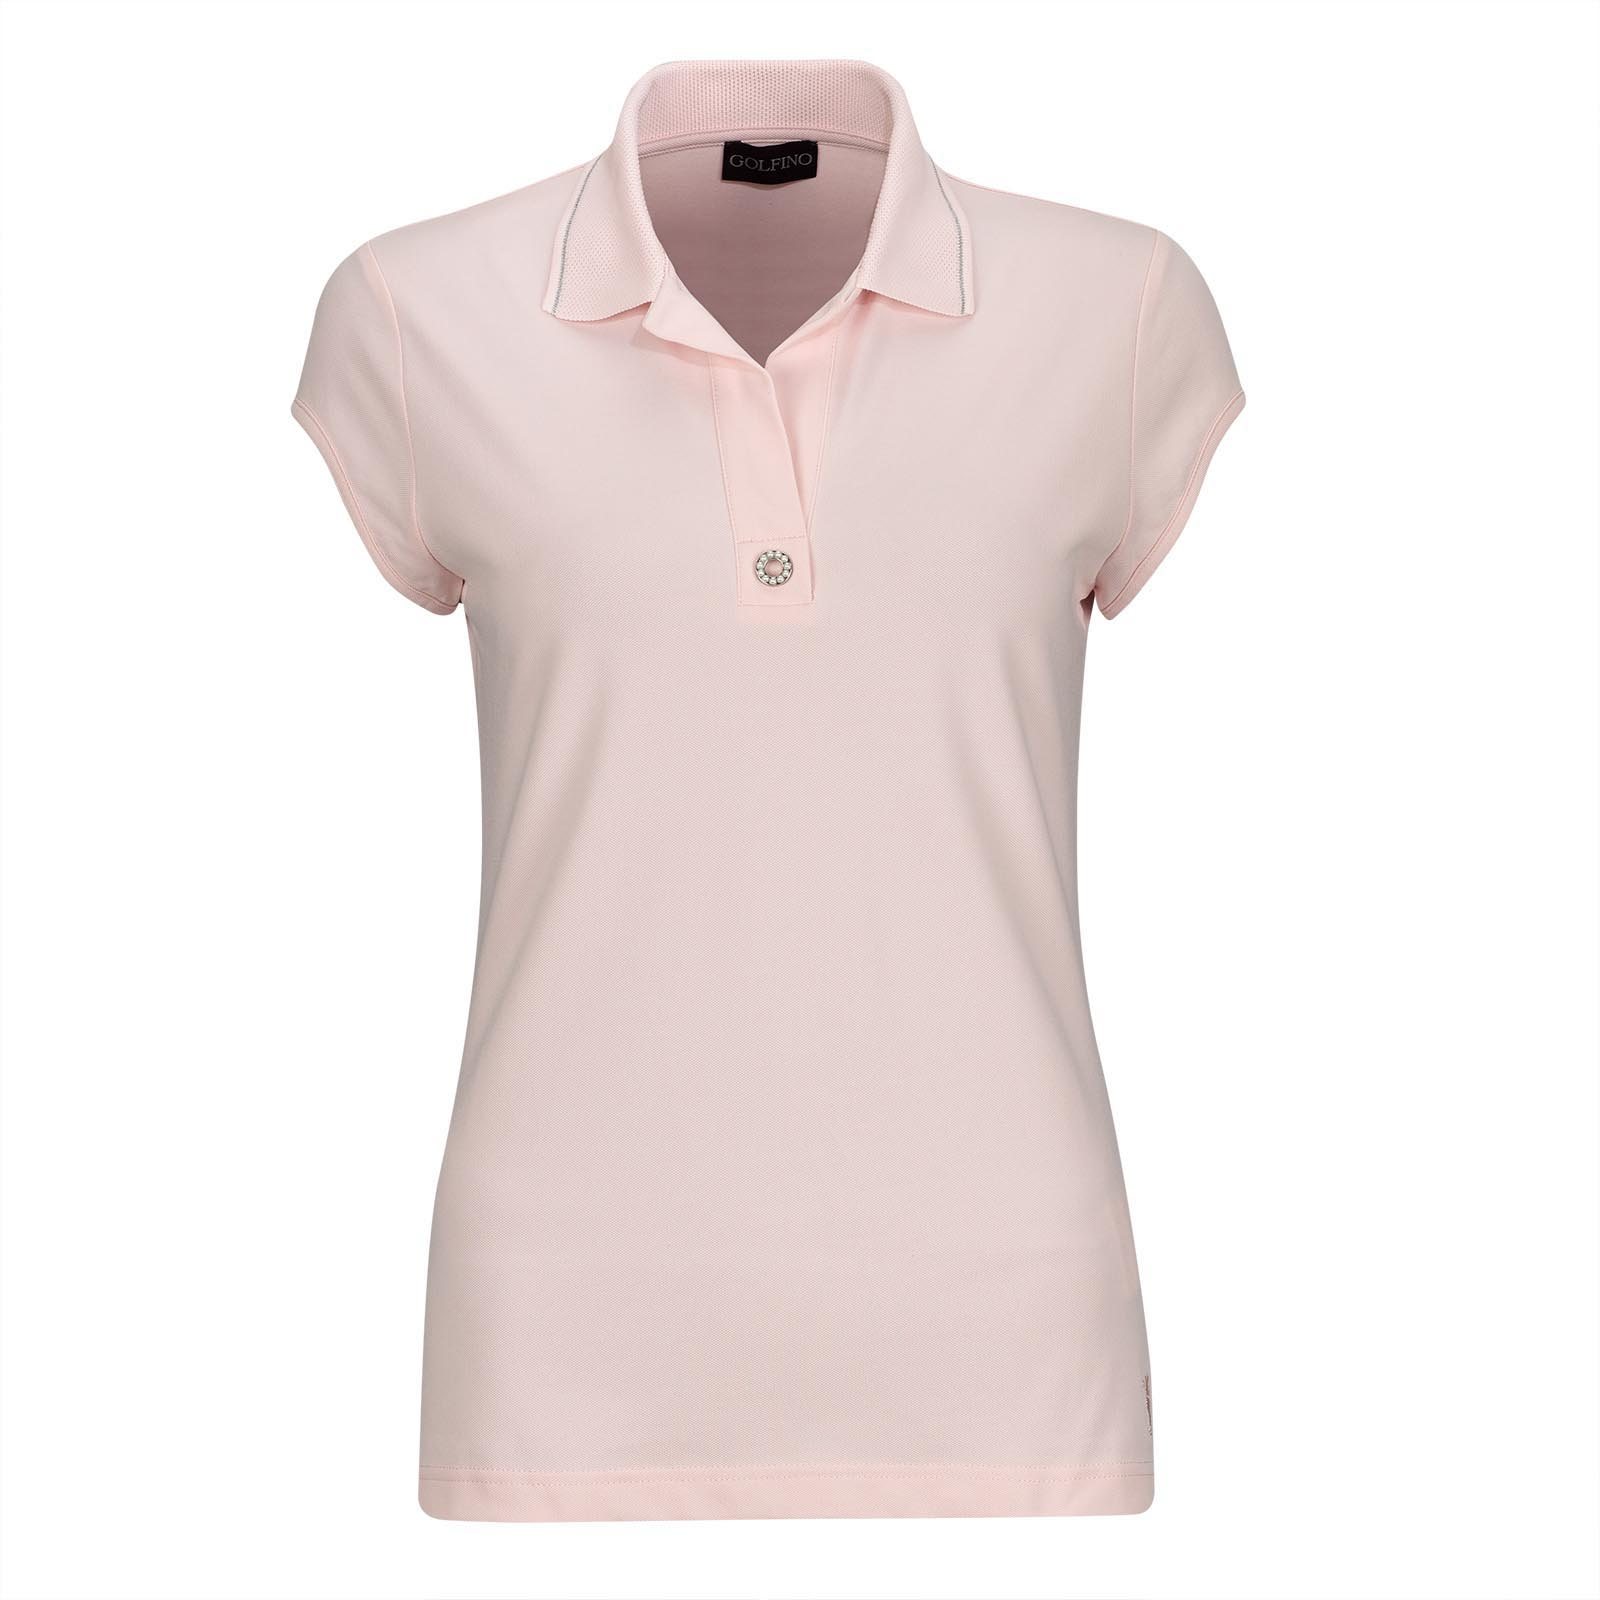 Ladies' short sleeve cotton blend golf polo with Sun Protection and pearl trim